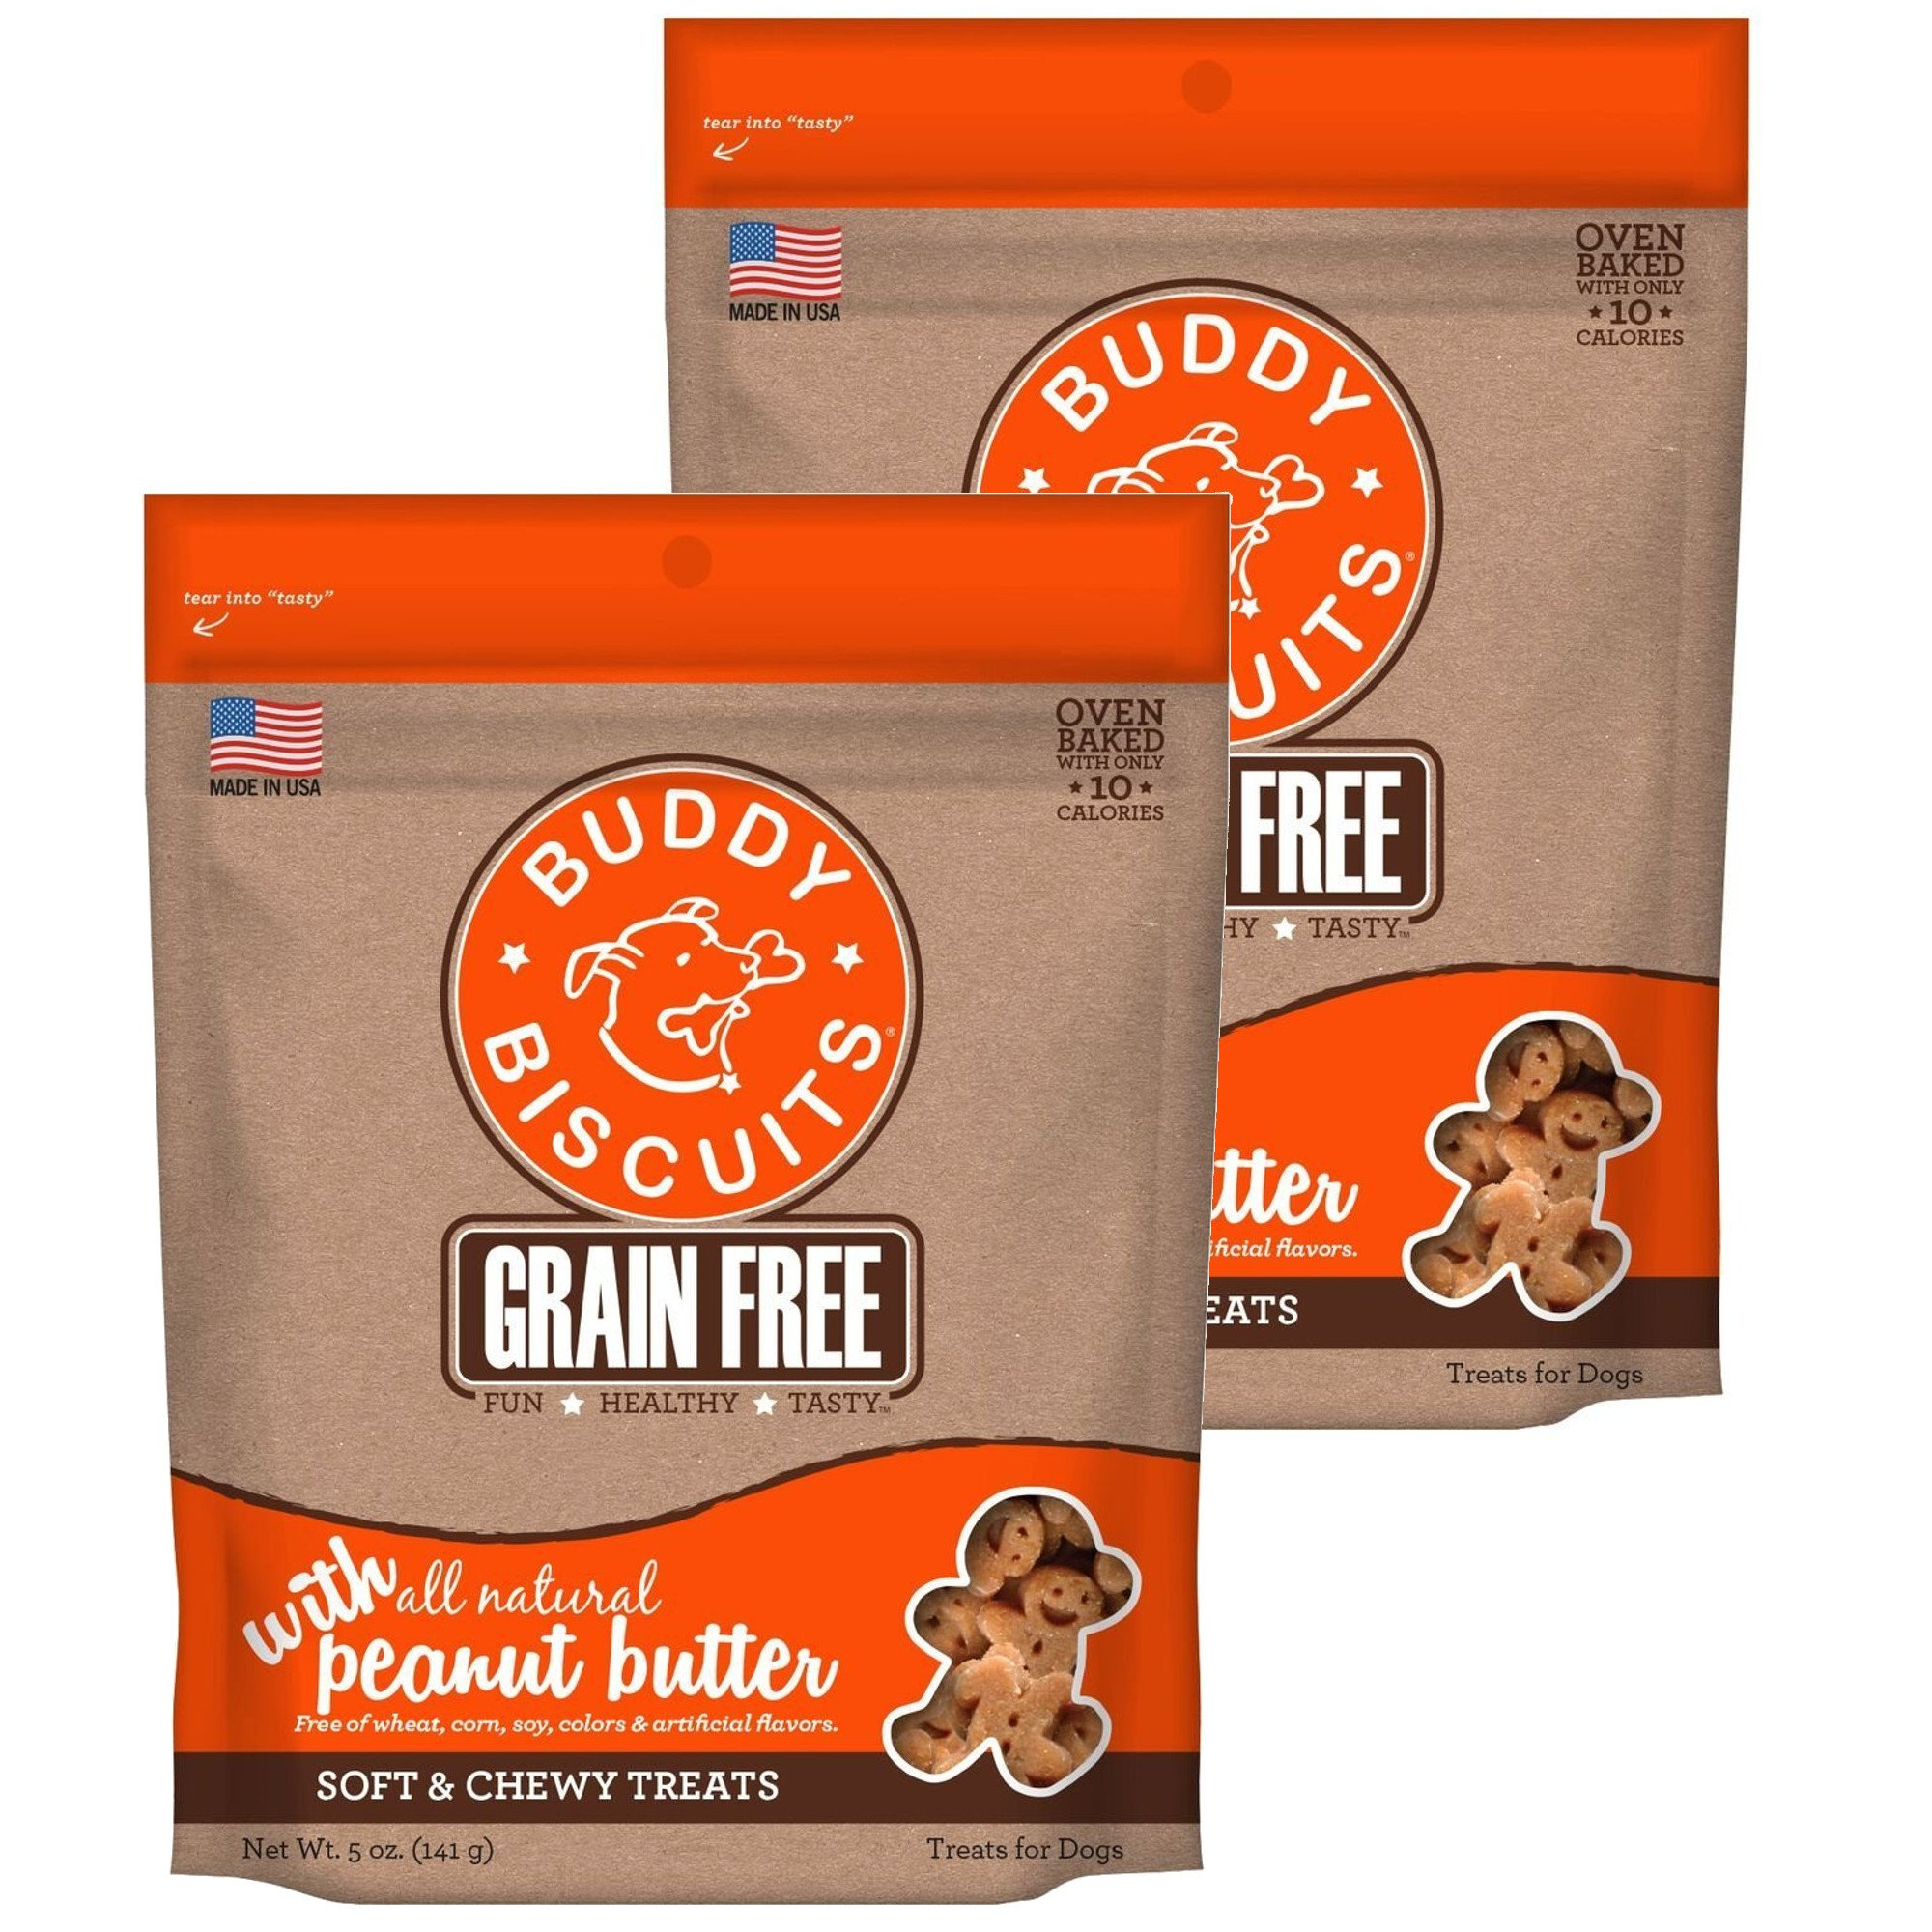 Cloud Star Buddy Biscuits Grain Free Soft & Chewy Dog Treats with All Natural Peanut Butter (2 Pack) 5 oz Each